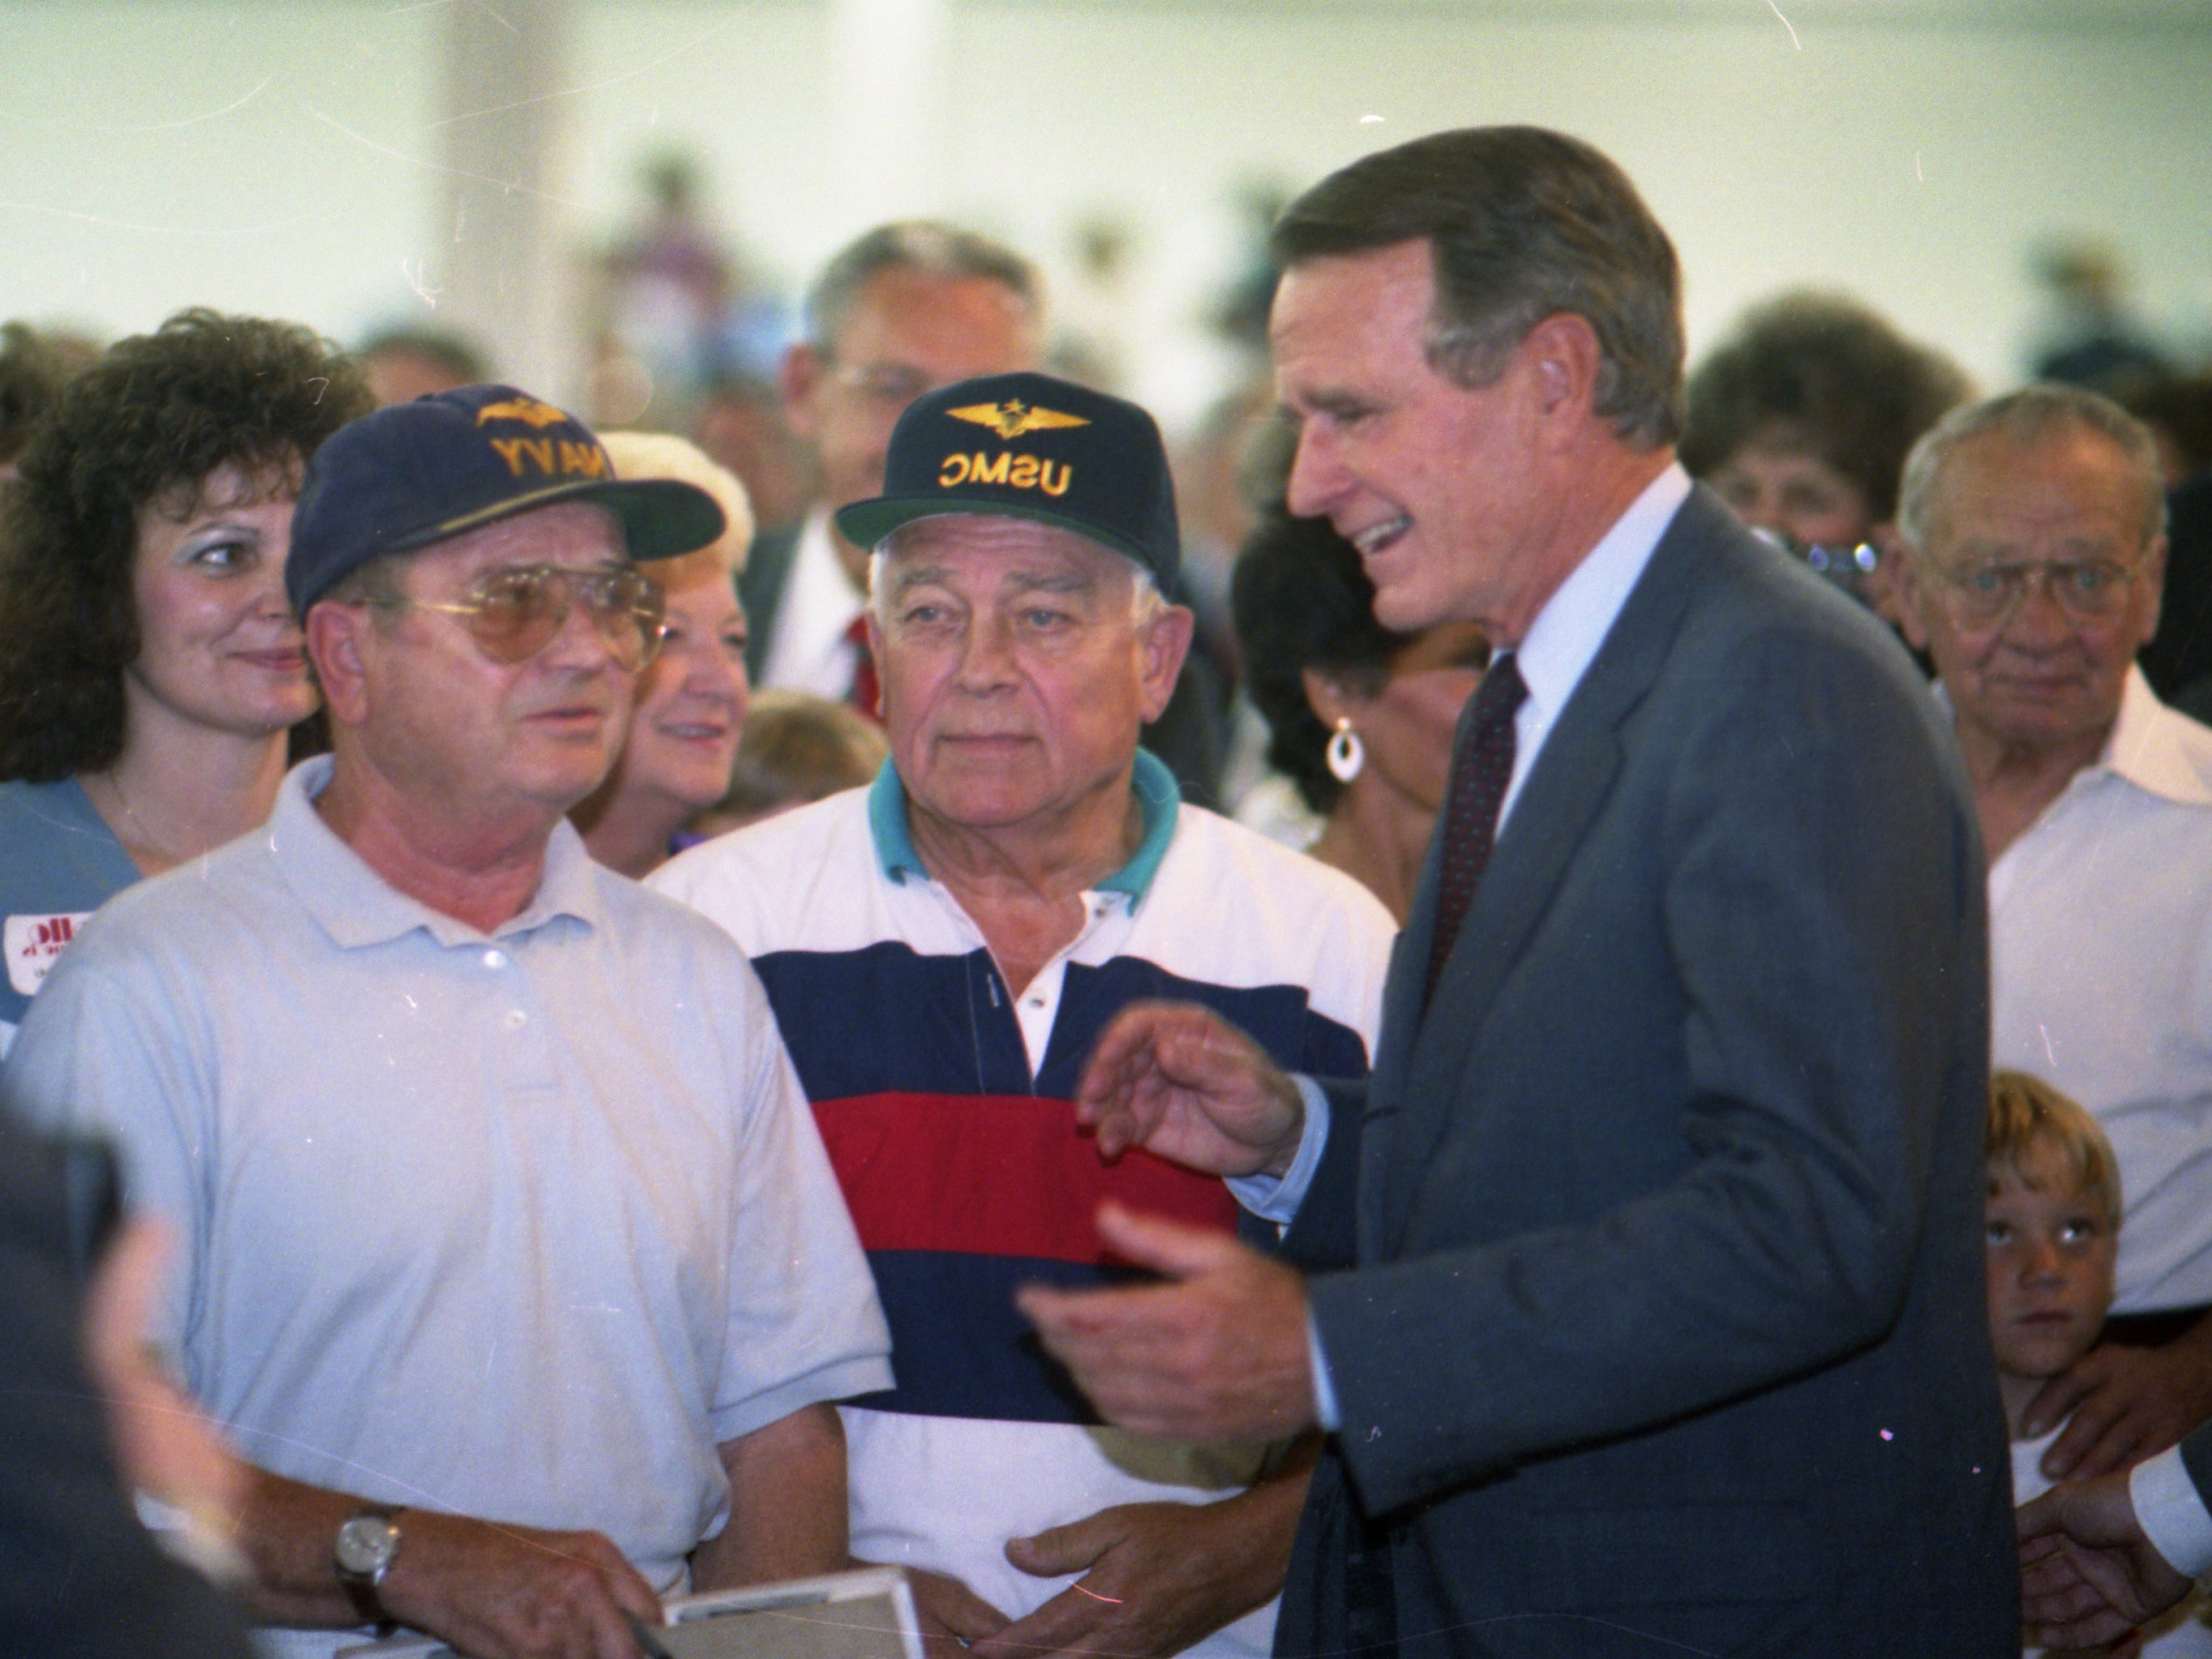 July 27, 1992. President George H. W. Bush spreads a Republican campaign message in the Fox Cities. Post-Crescent photo by Mark Courtney